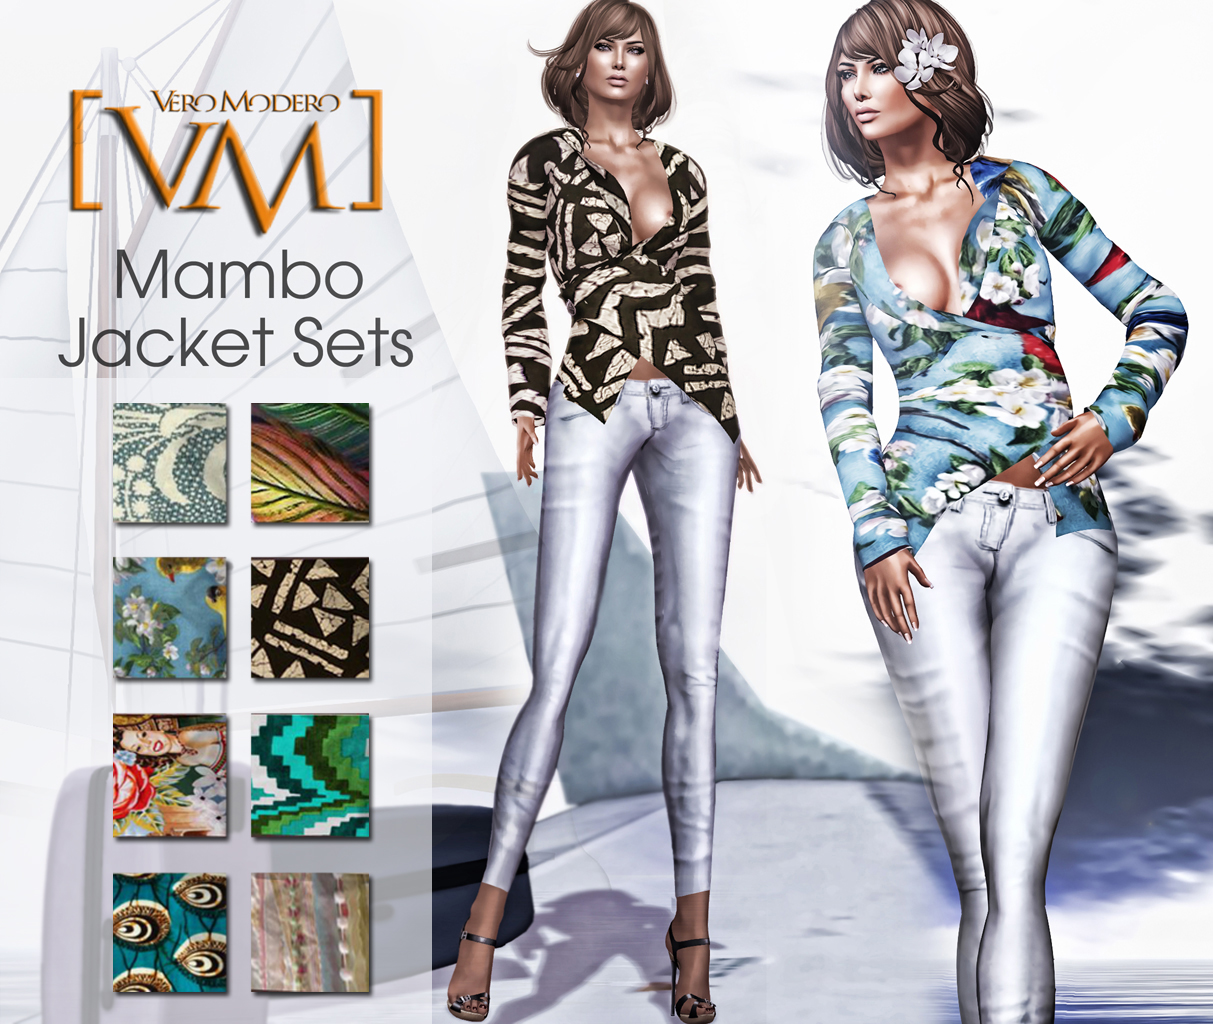 [VM] VERO MODERO  Mambo Jacket Sets All Patterns